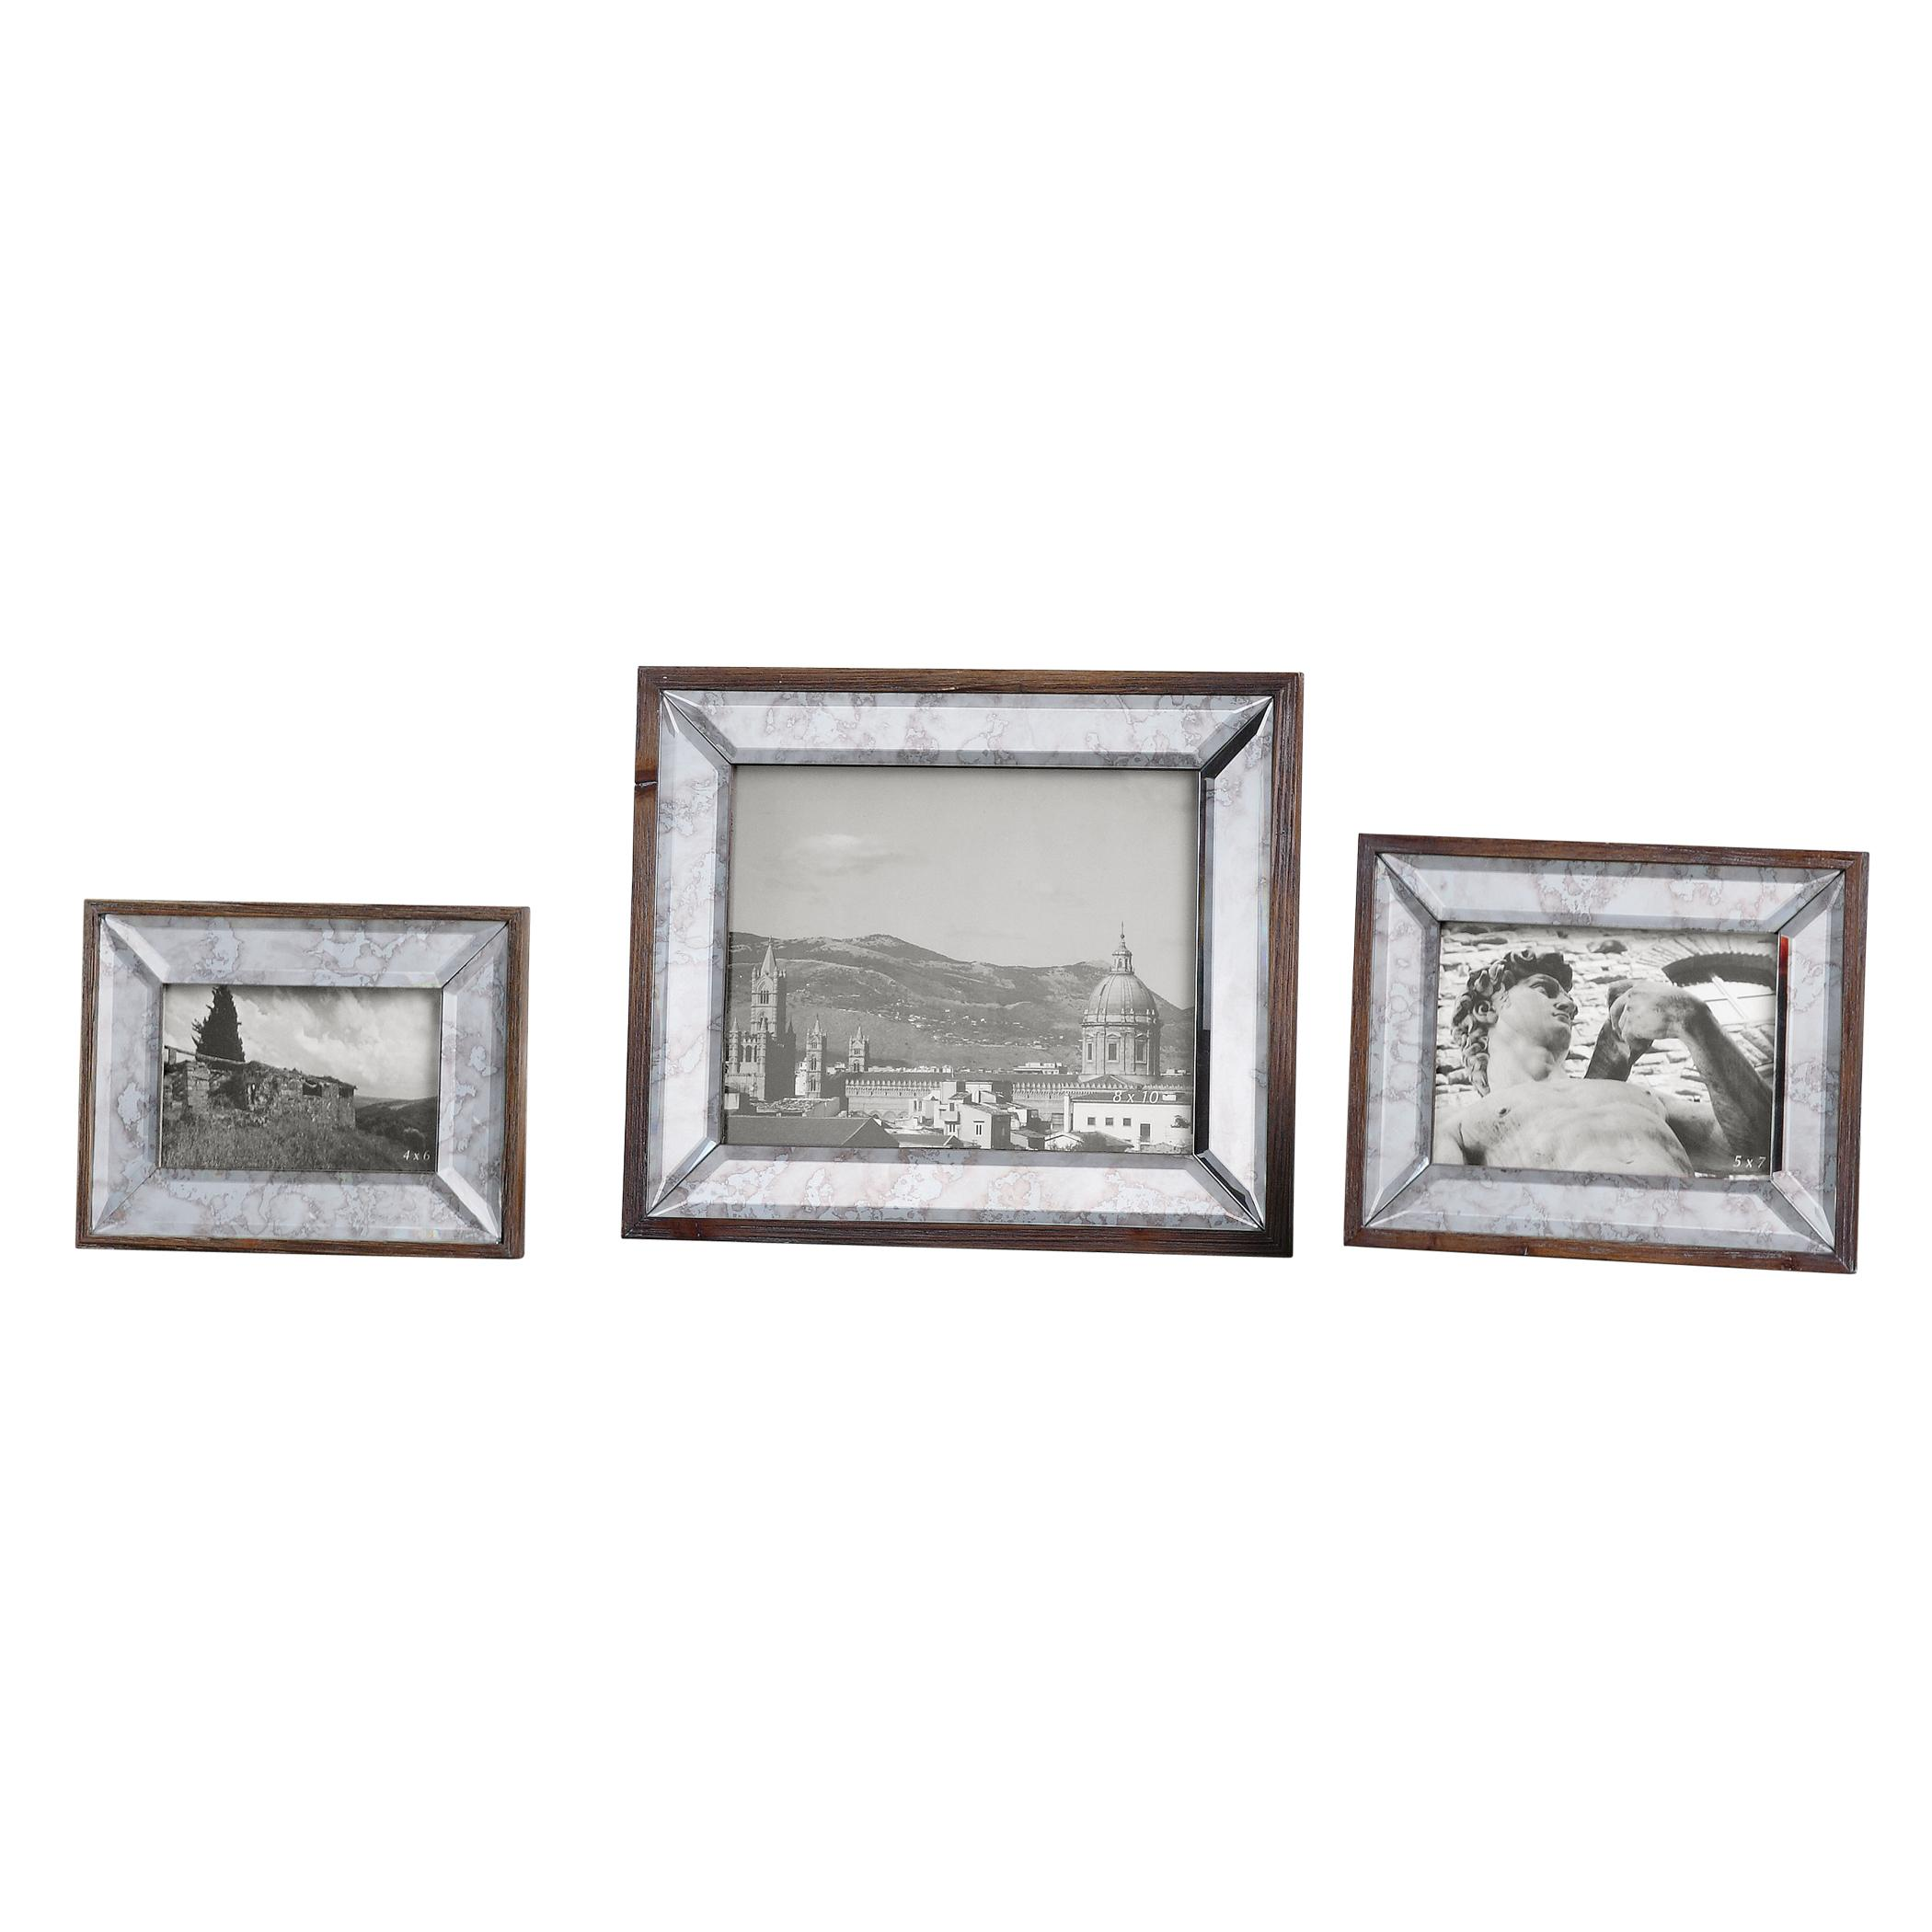 Uttermost Accessories Daria Antique Mirror Photo Frames Set of 3 - Item Number: 18567